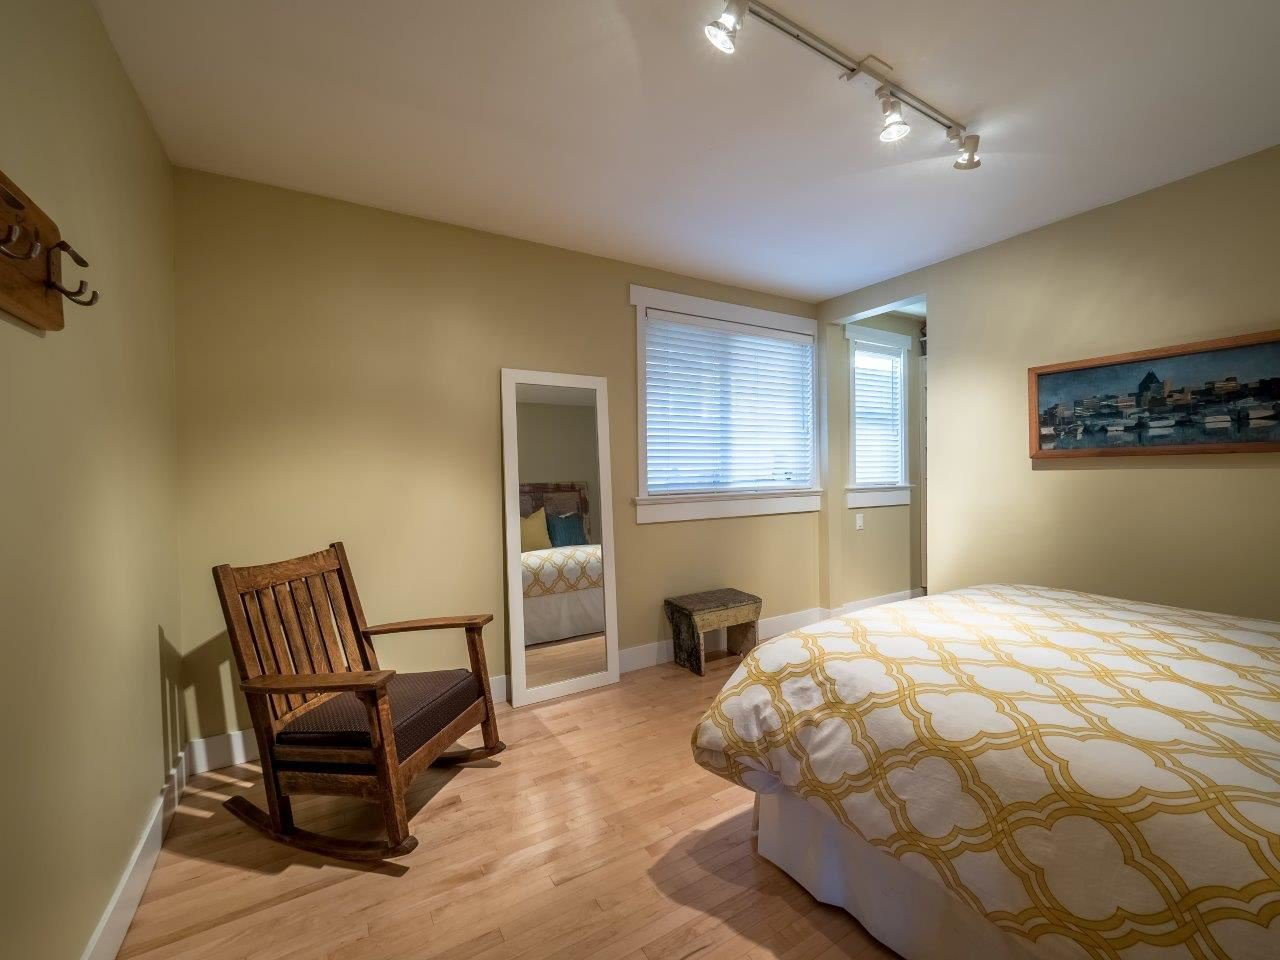 Photo 12: Photos: 345 BEACHVIEW DRIVE in North Vancouver: Dollarton House for sale : MLS®# R2035403